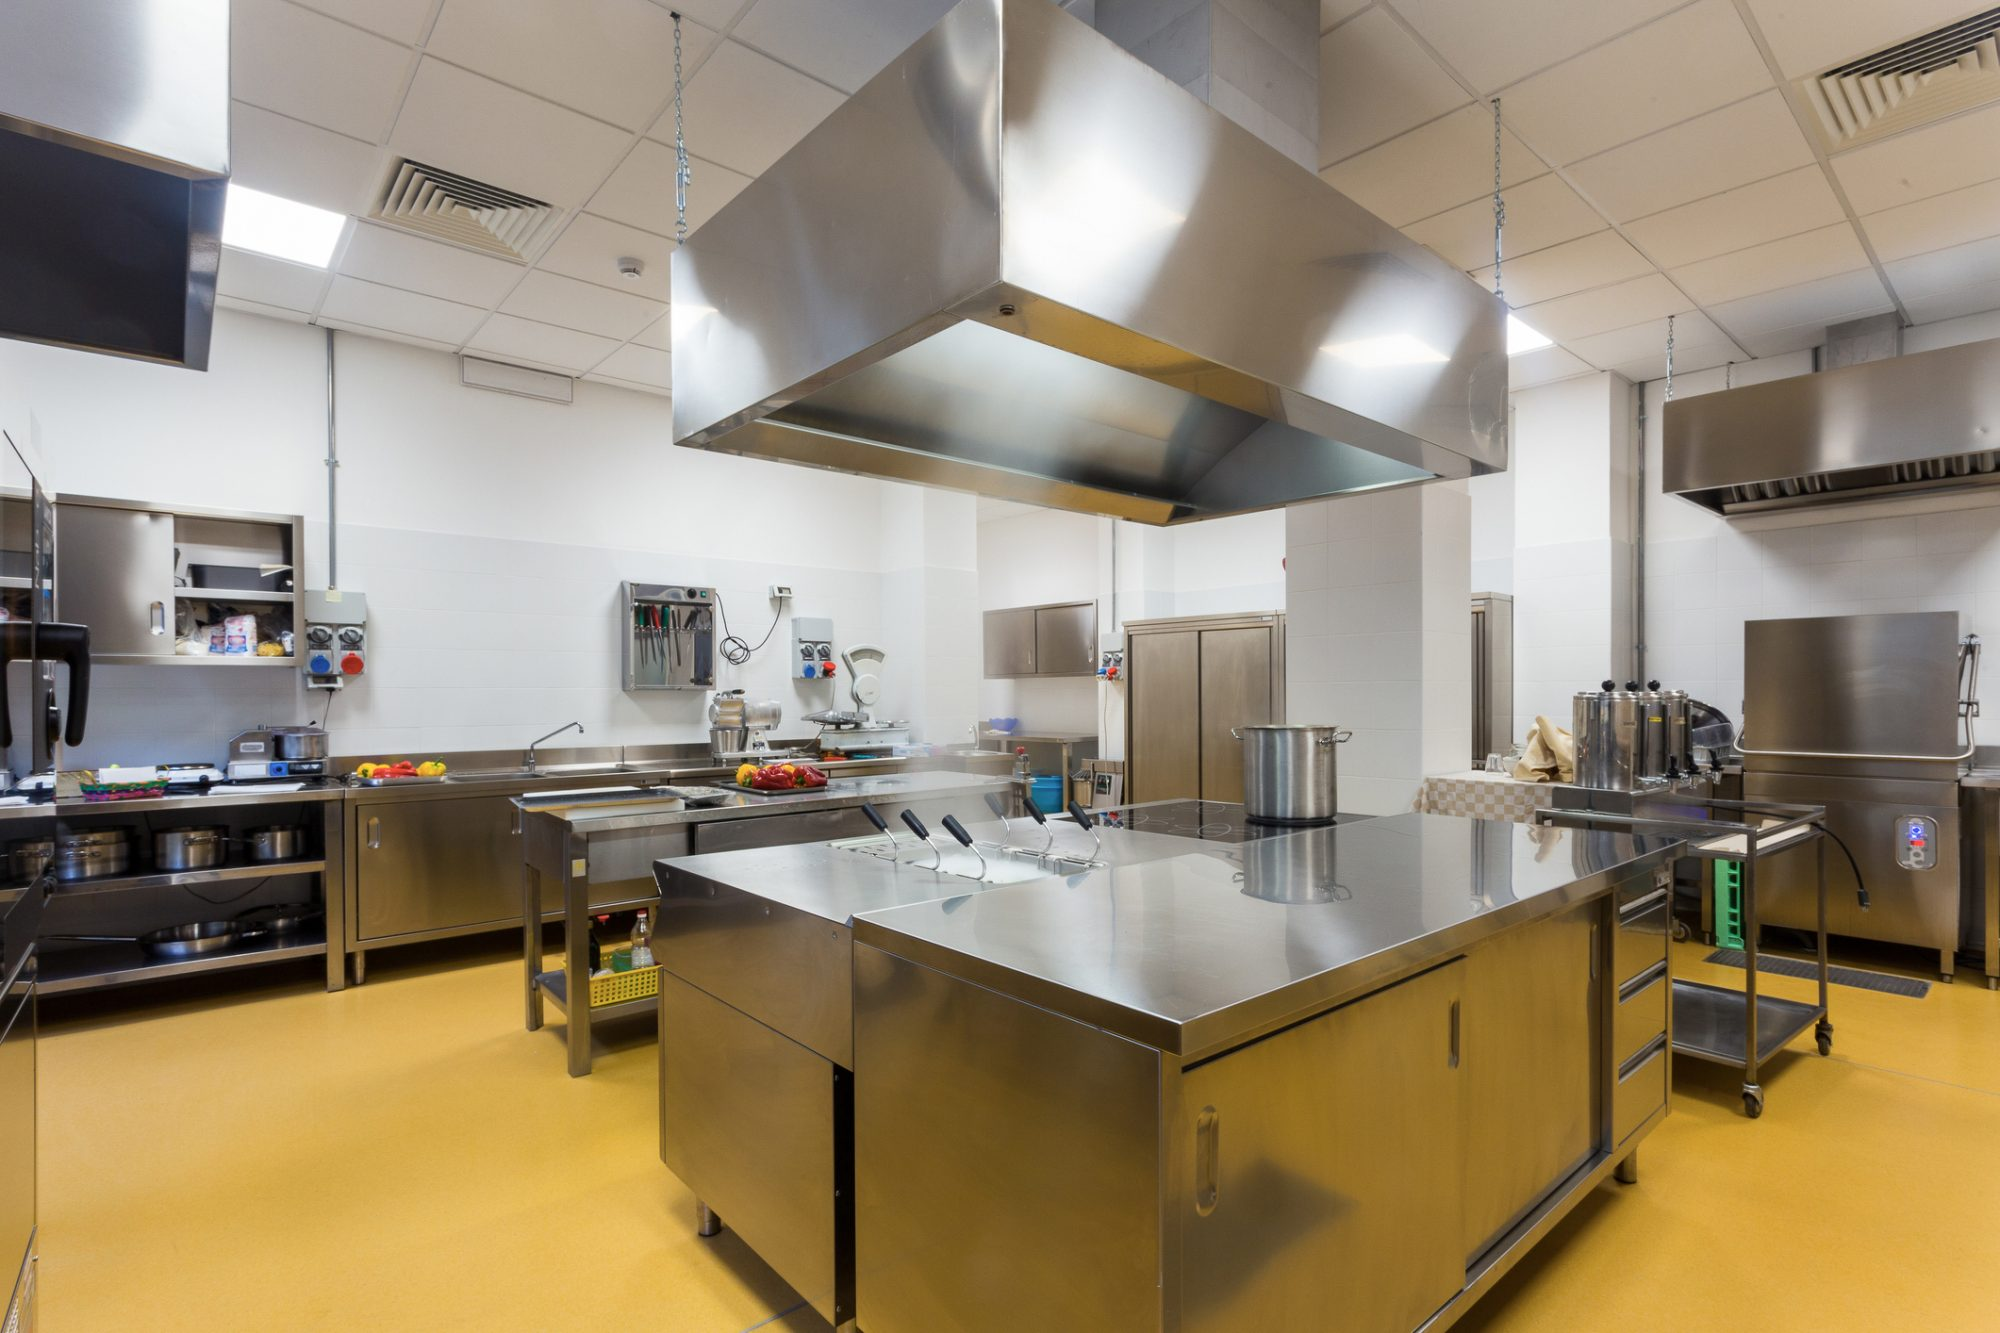 Commercial kitchen with stainless appliances